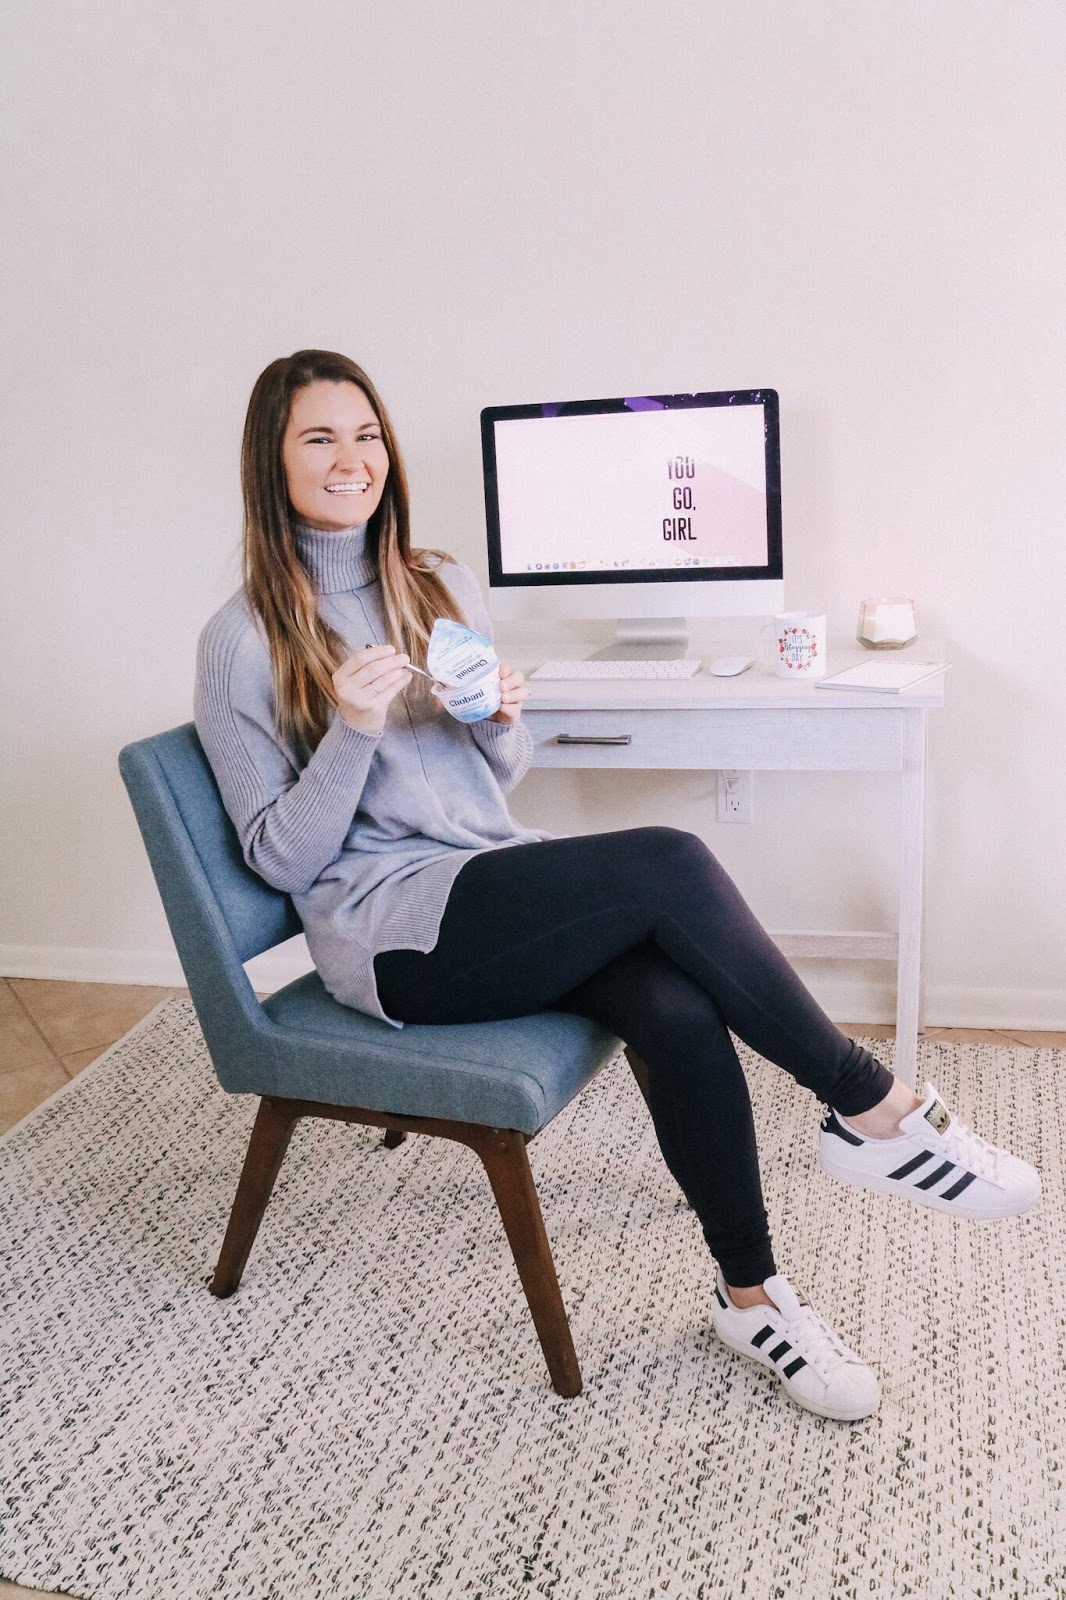 Tampa blogger enjoying Chobani Less Sugar Greek Yogurt in her home office